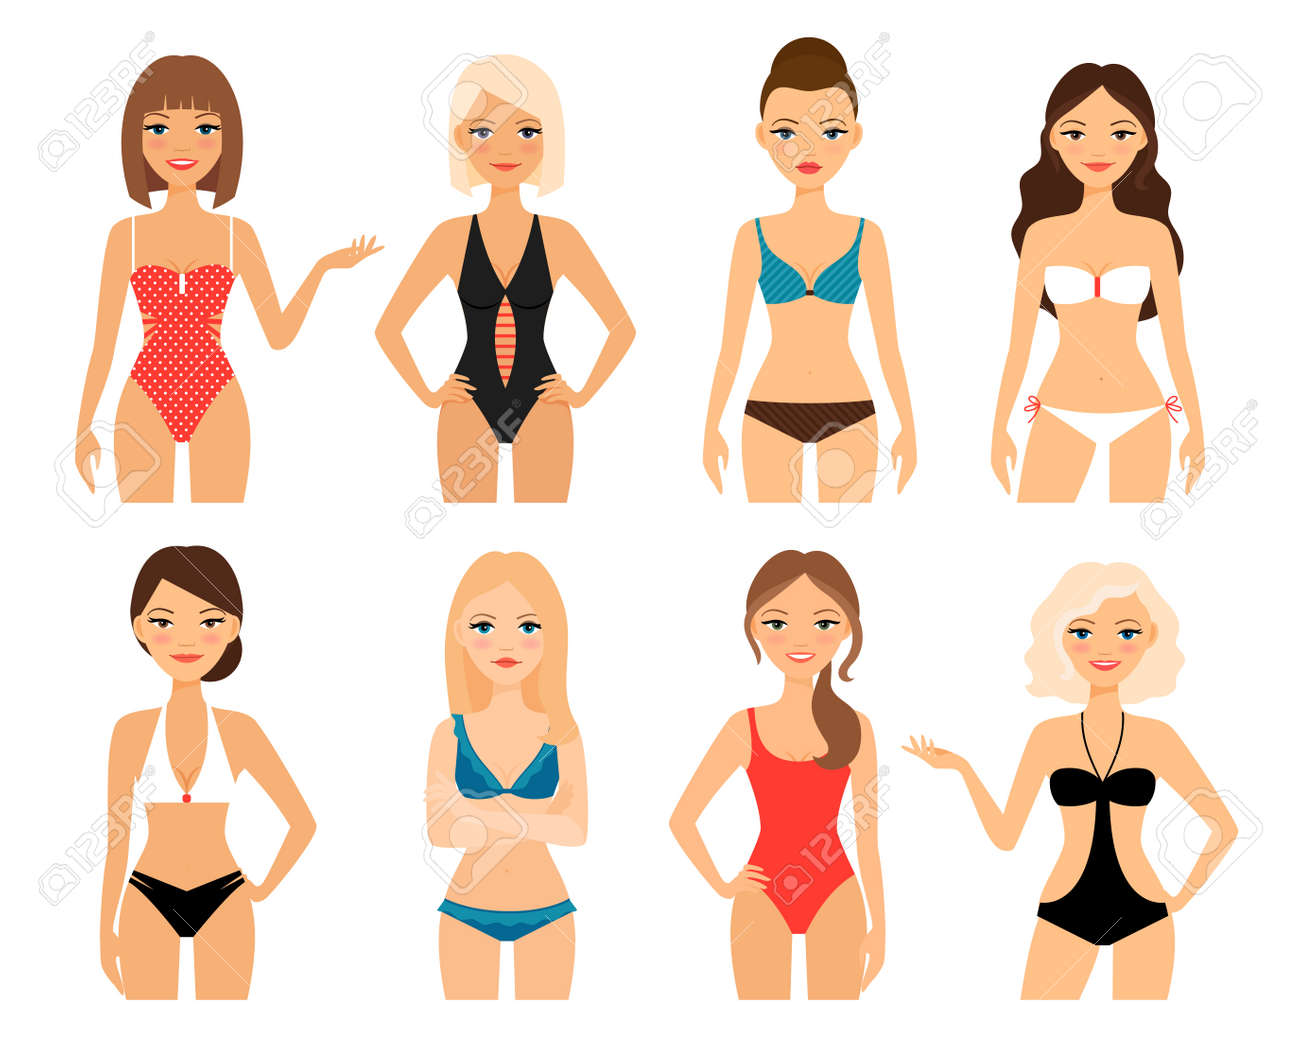 Women in swimsuit. Beautiful girls in bathing suits of different types. Vector illustration - 165989329